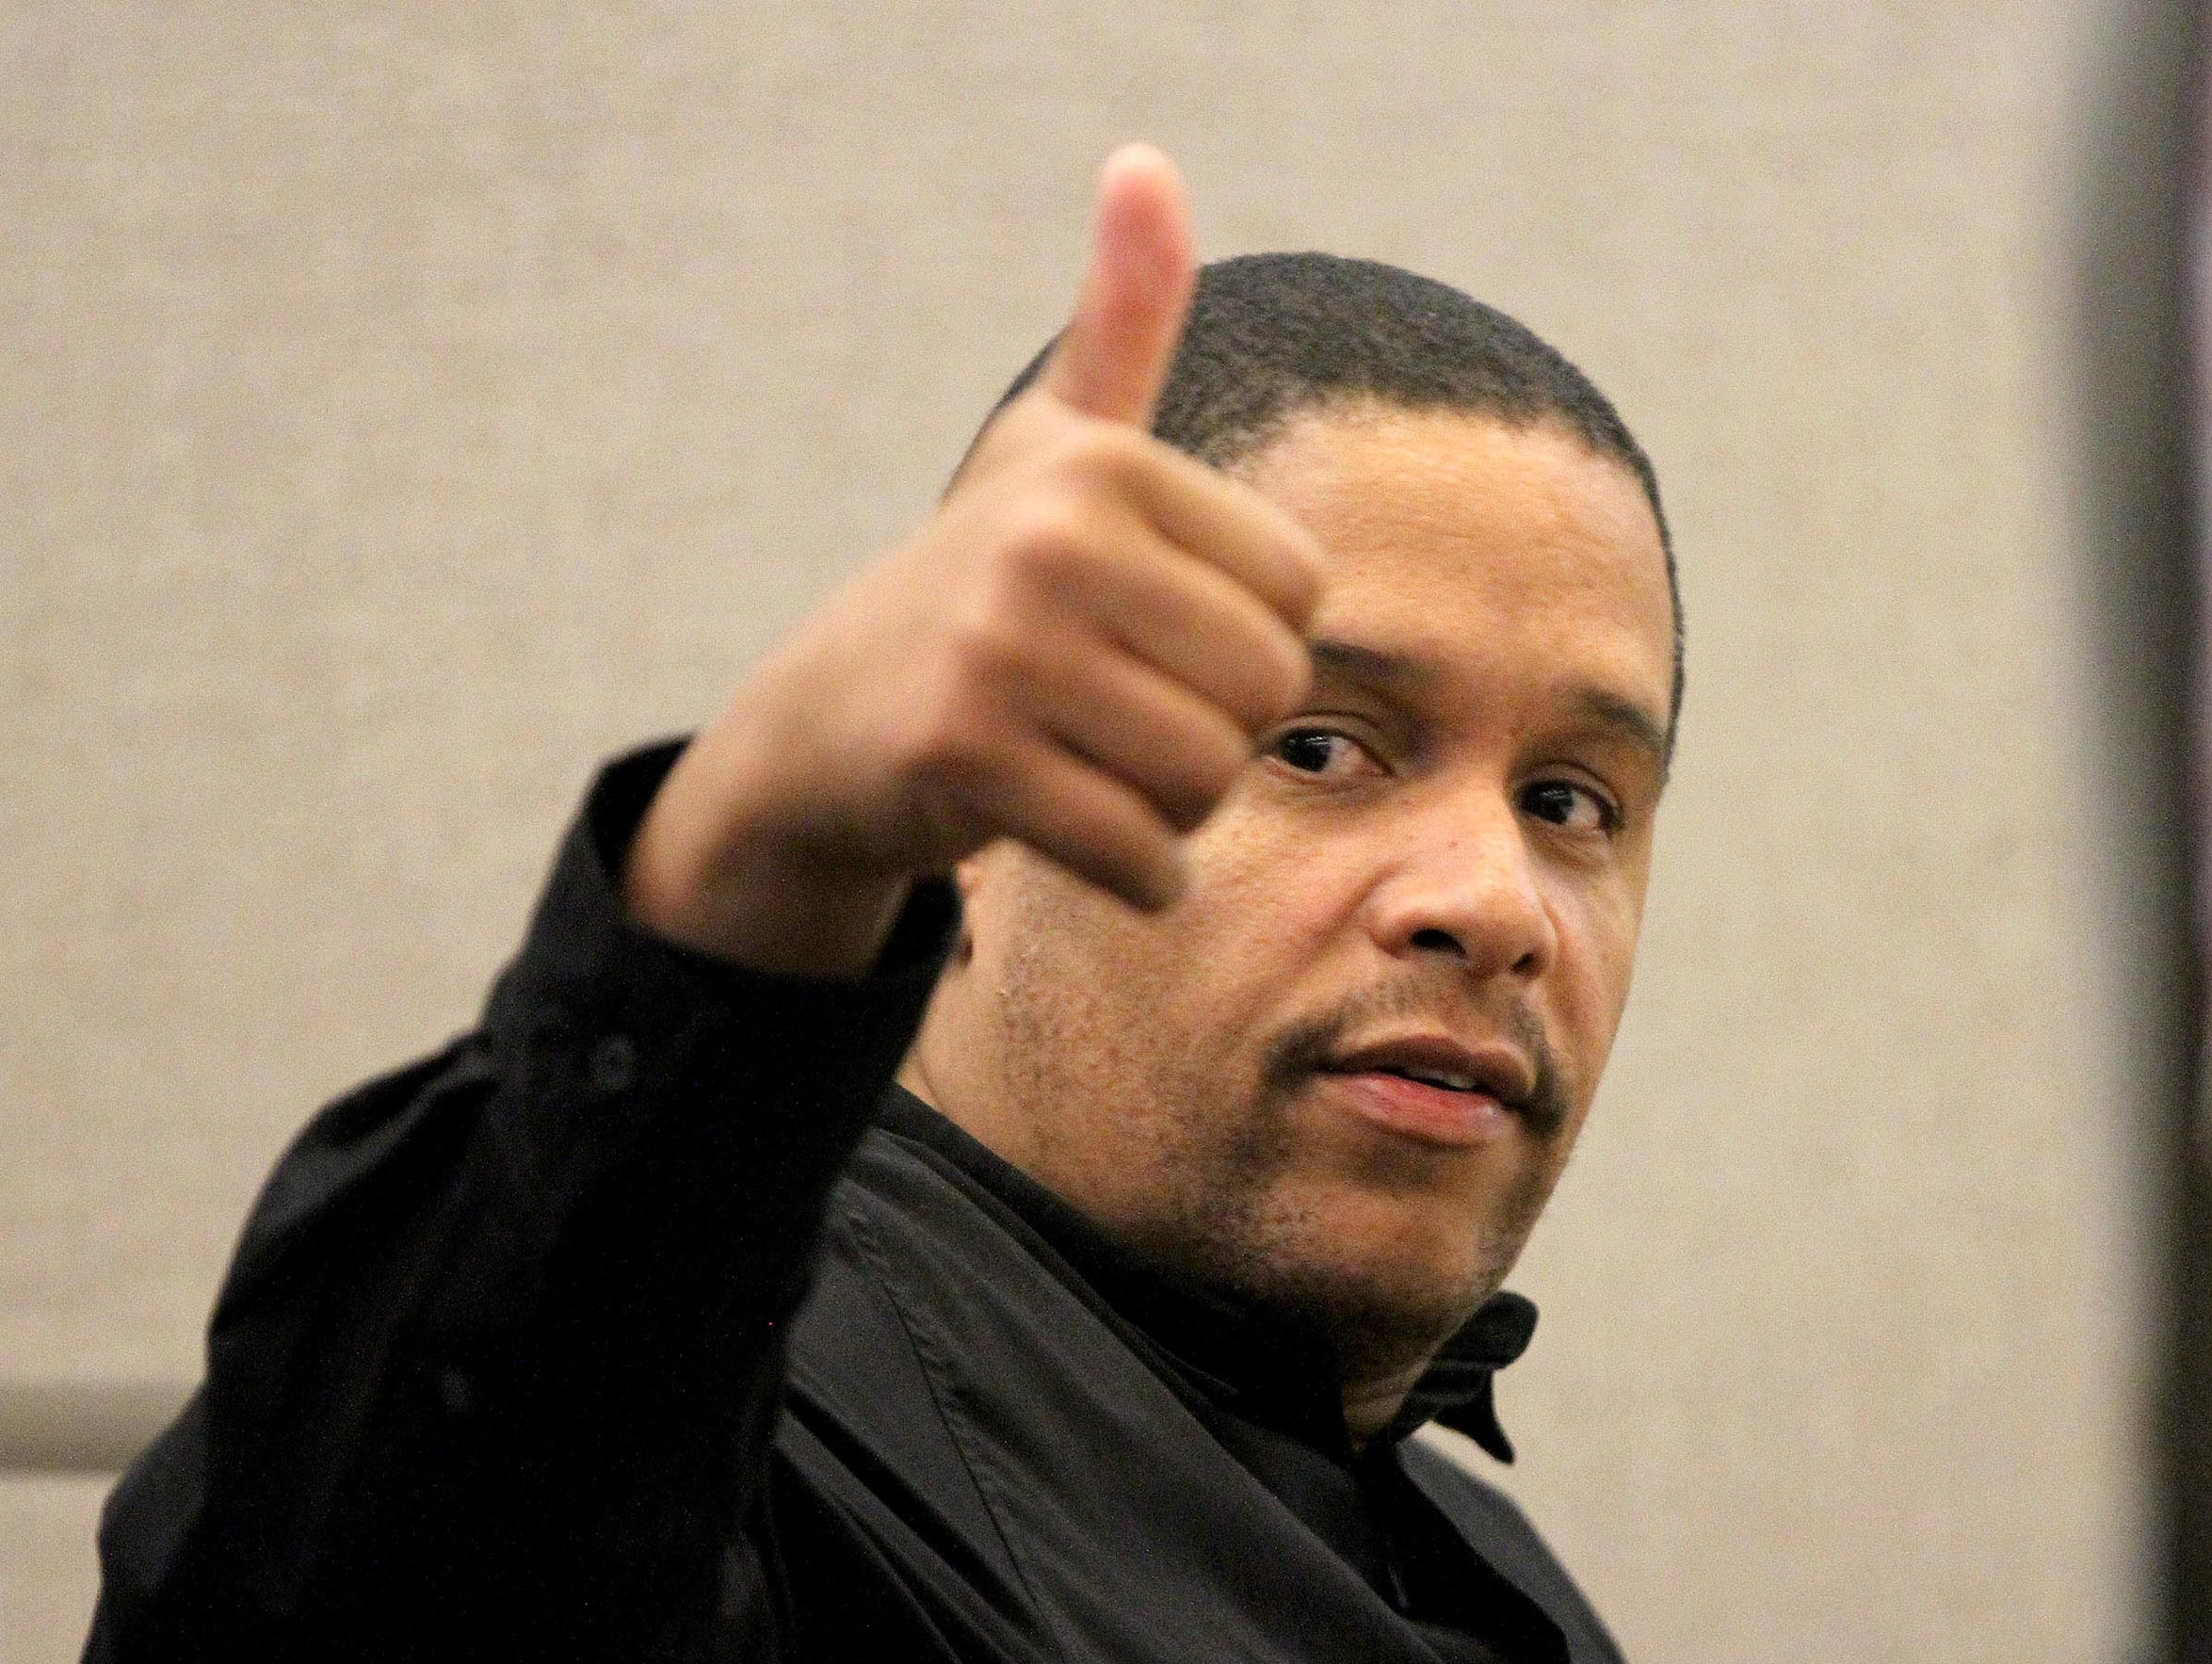 Keith German, the former Asbury Park police officer who went on the lam while on trial with two alleged gang members, flashes a thumbs-up to women in the gallery before his trial resumed at the Monmouth County Courthouse.